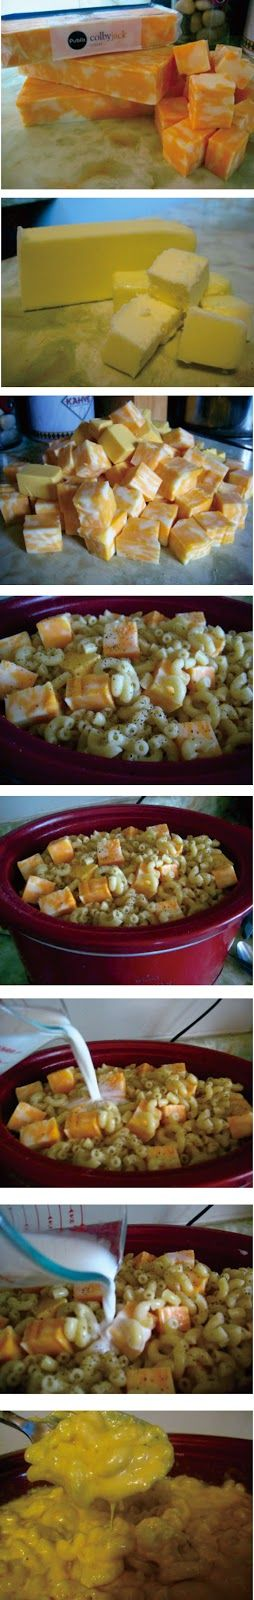 Crock Pot Mac and Cheese - I found this recipe online, and was hesitant to try it. I don't always like cooking crock pot recipes that contain pasta, because the few times I have tried, the pasta came out gummy.